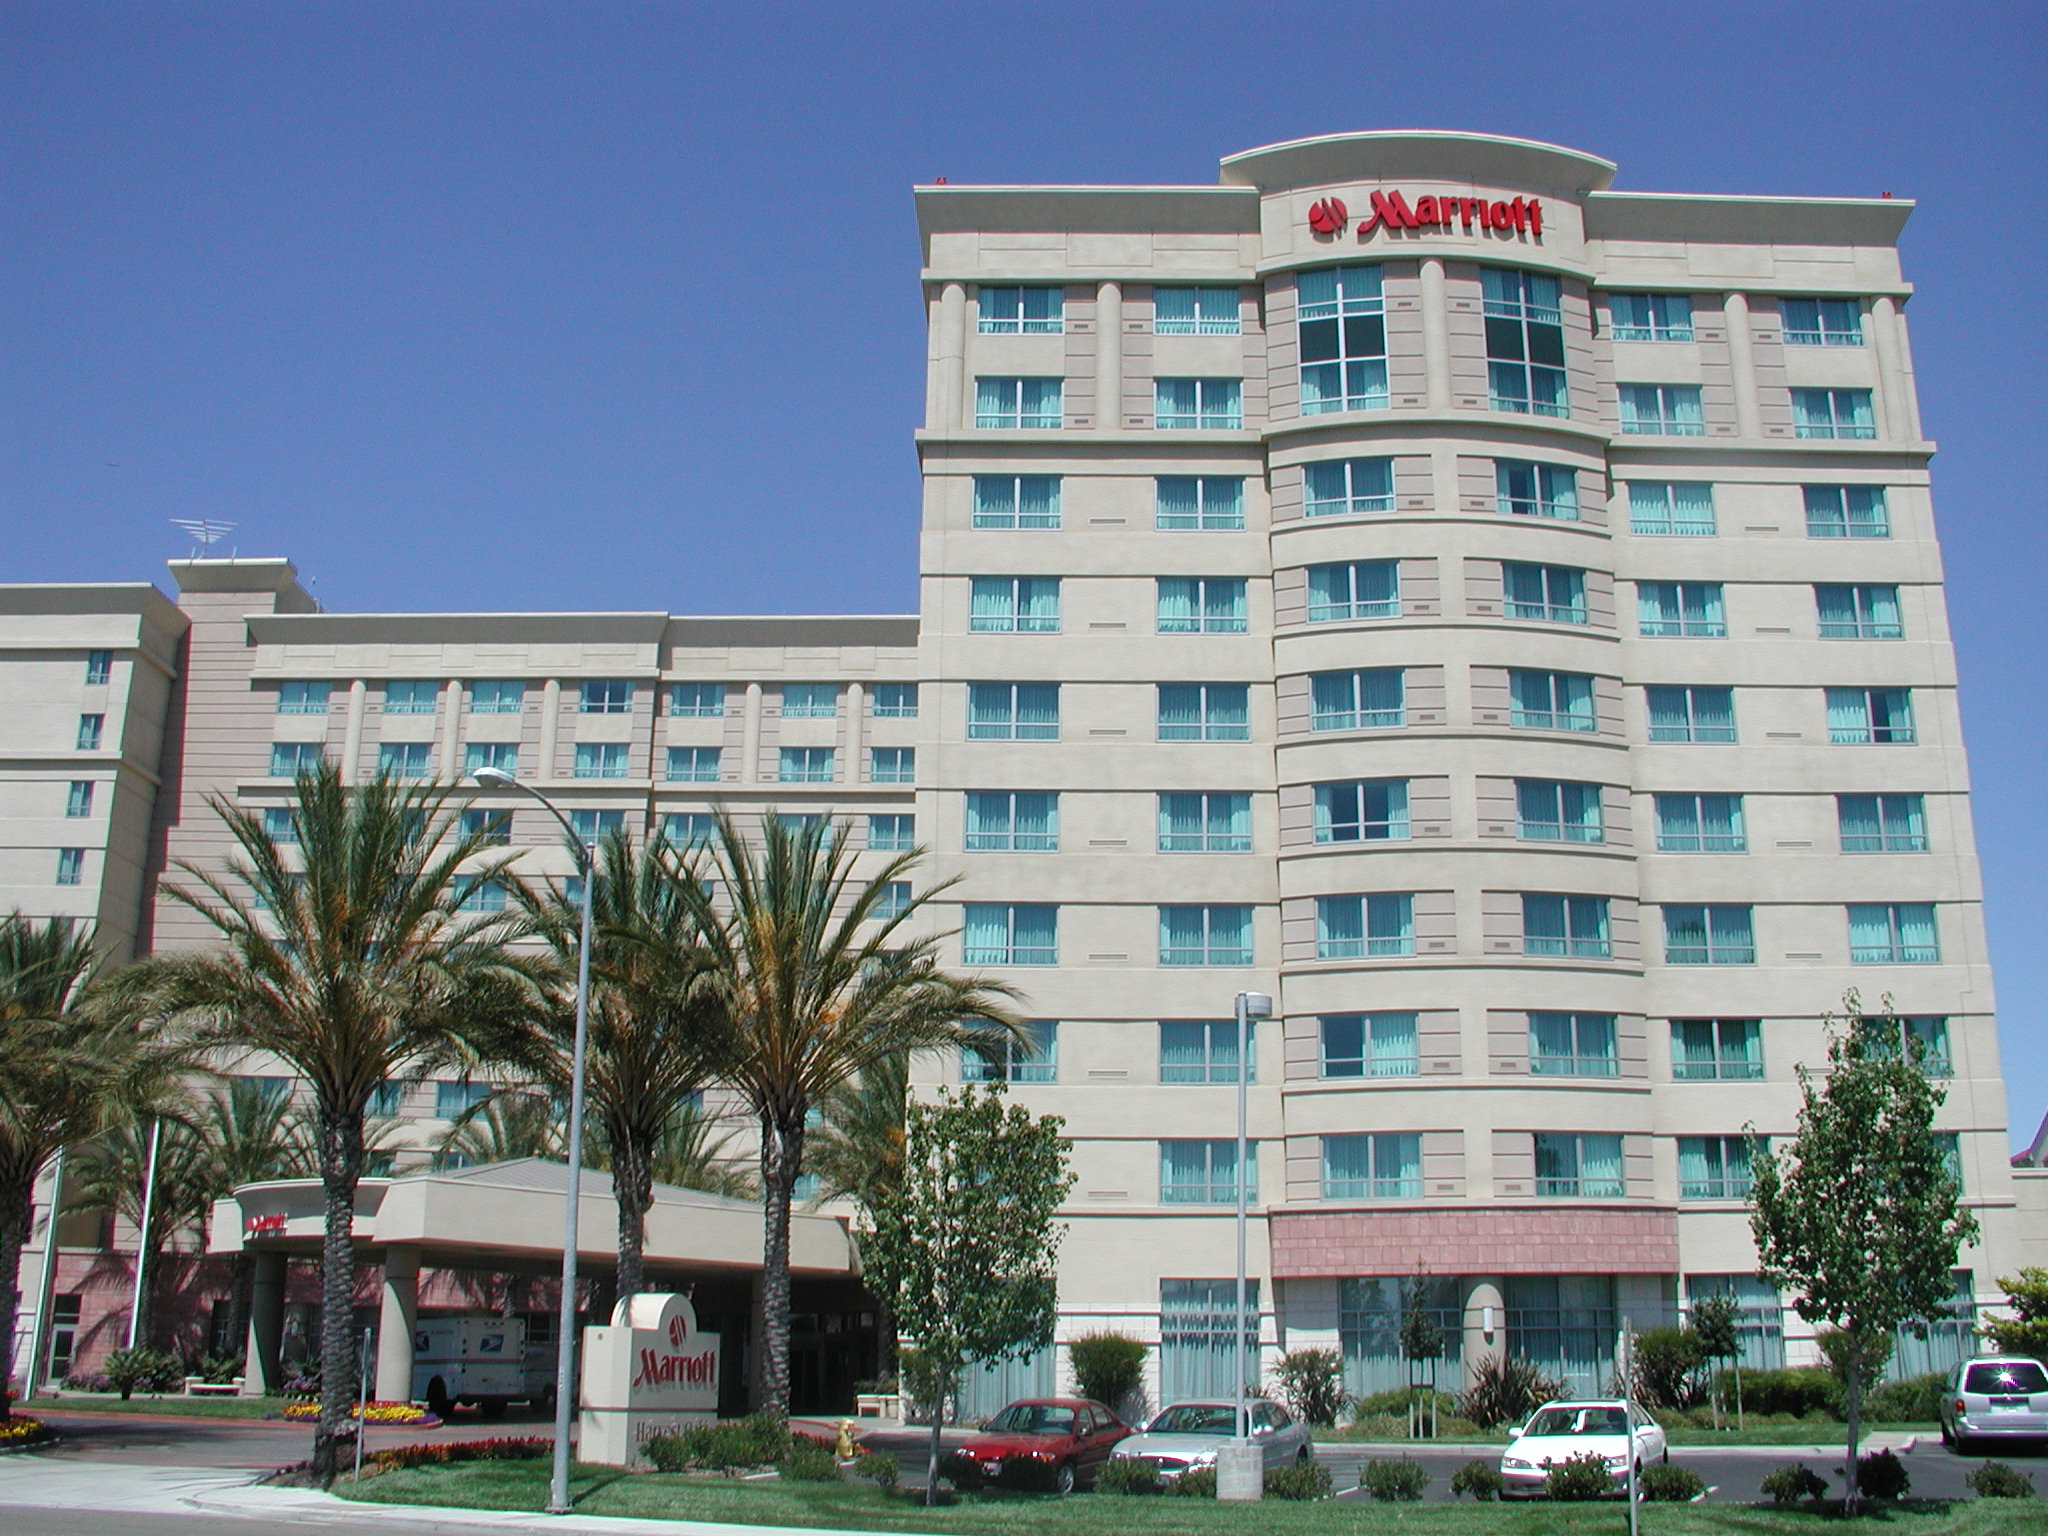 Marriott Hotel Fremont California